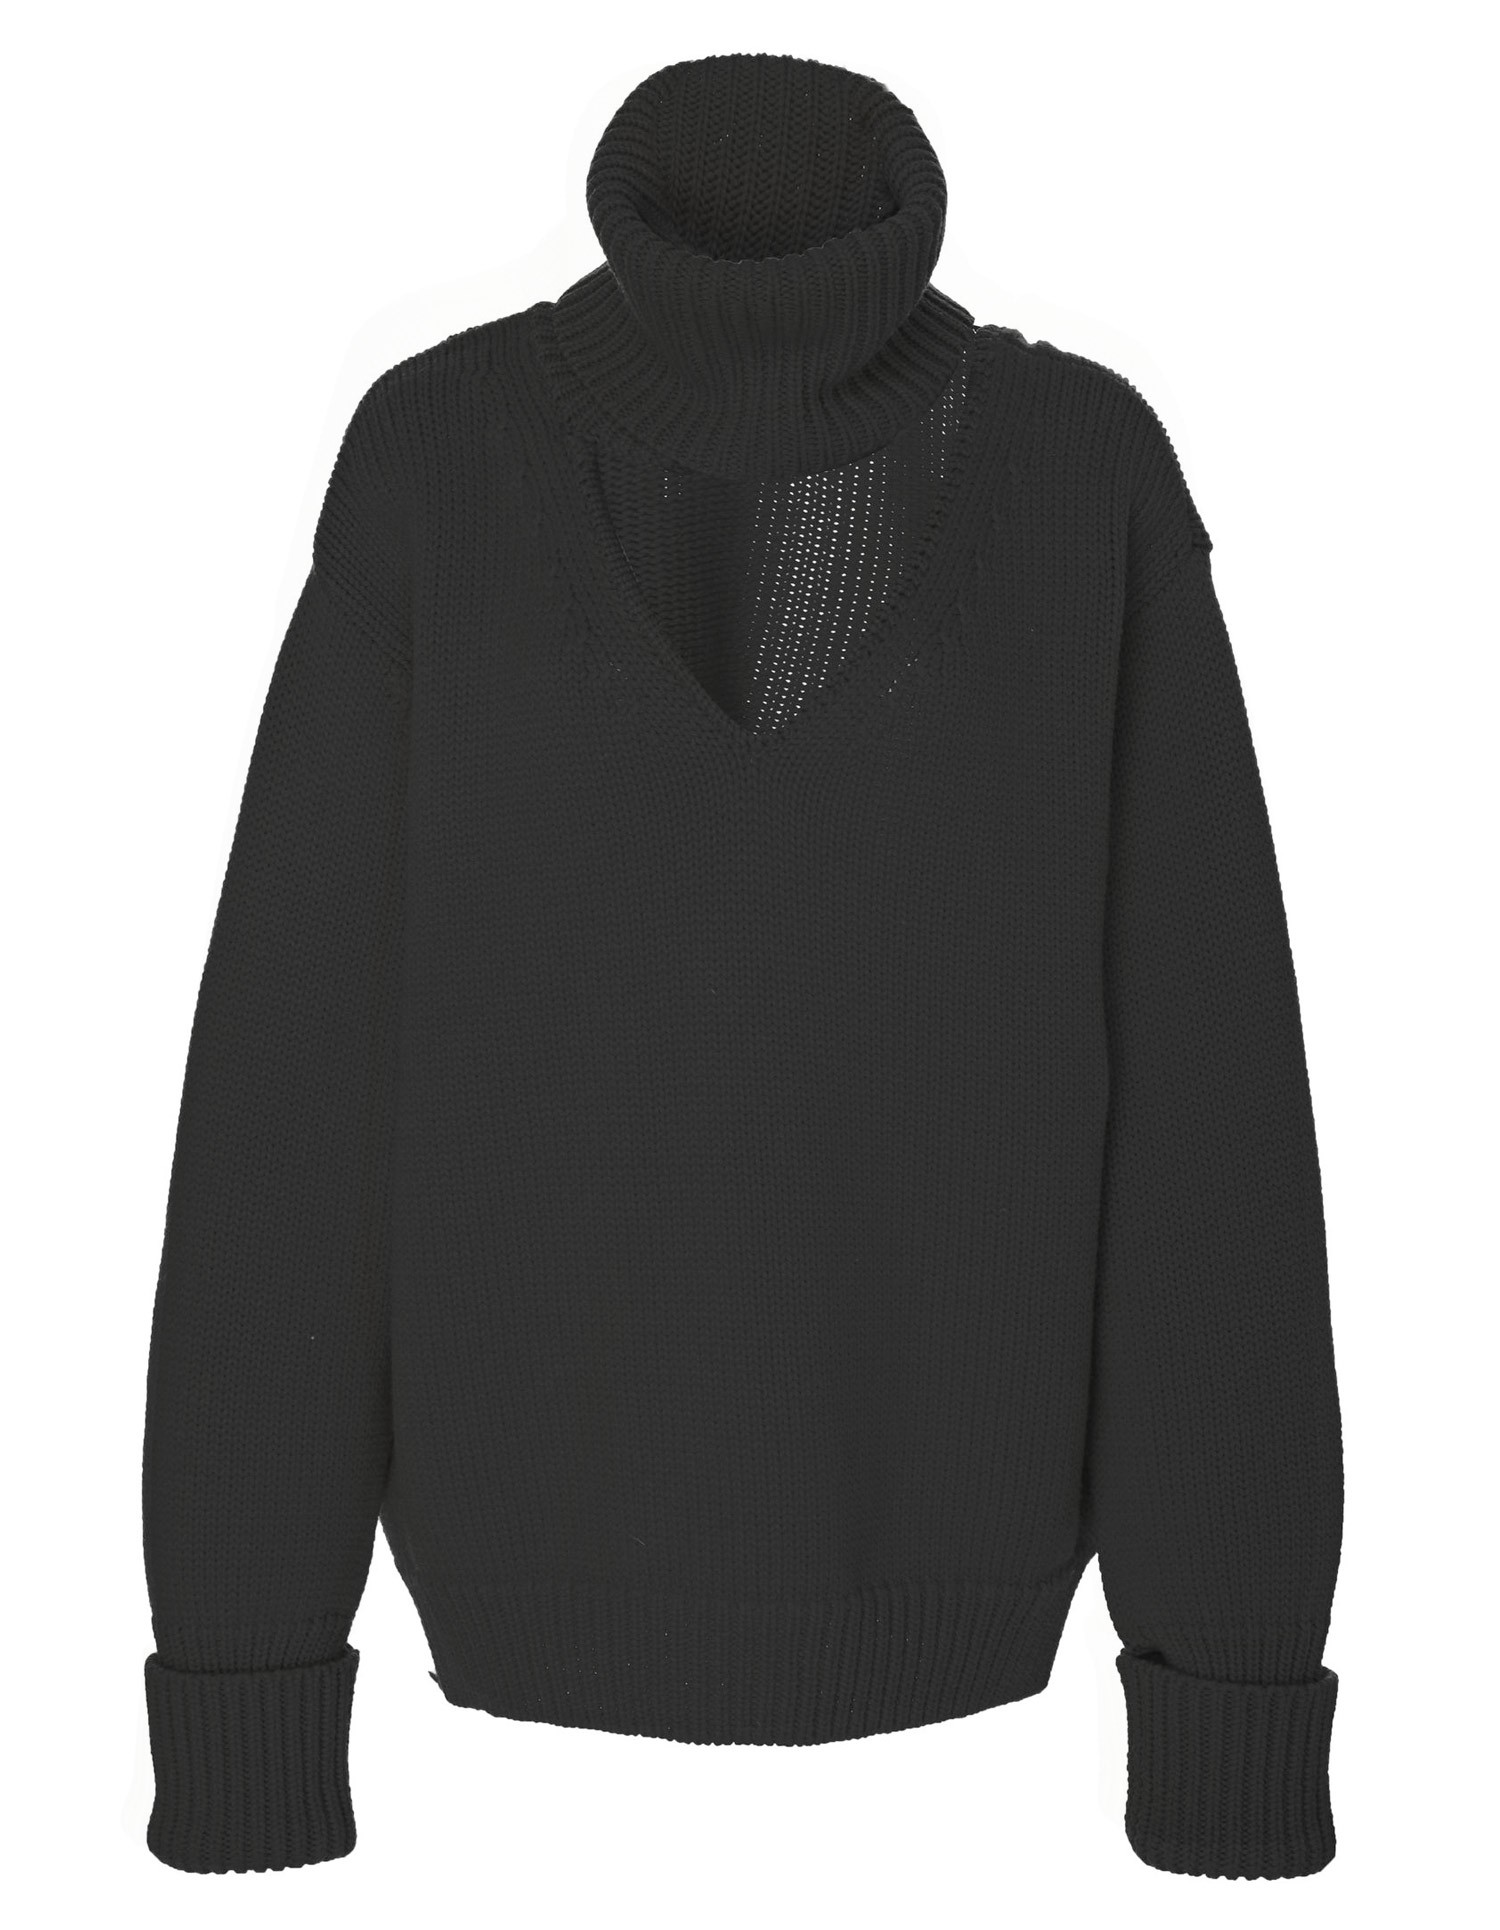 Drop Shoulder V-Neck Turtleneck Black